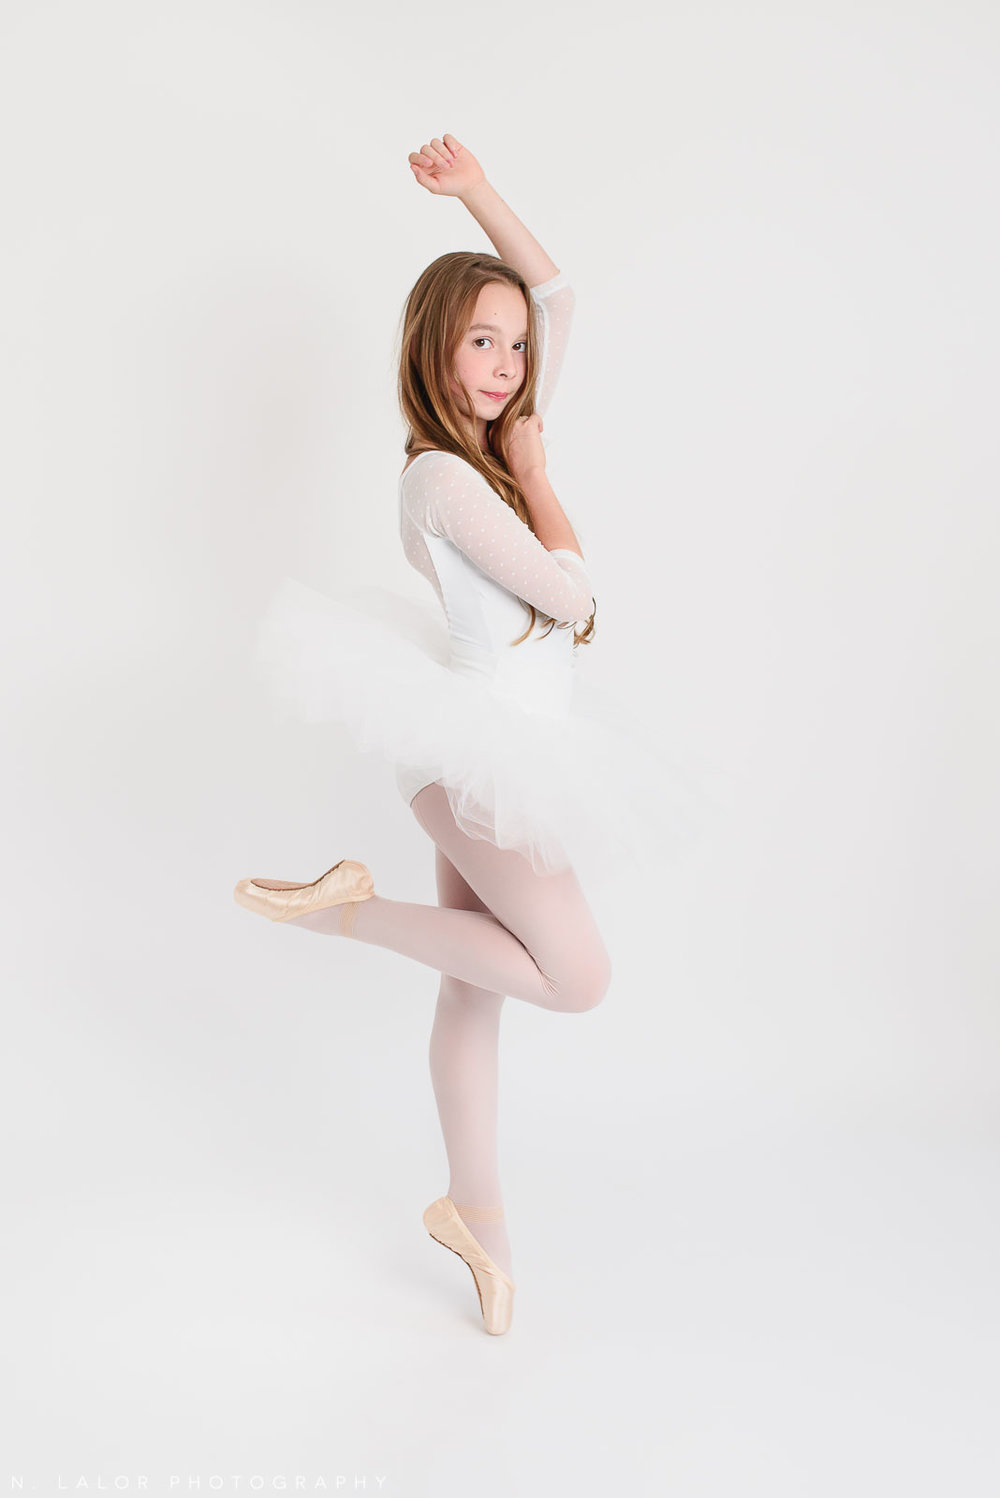 On pointe. Tween ballerina photoshoot with N. Lalor Photography. Greenwich, Connecticut.